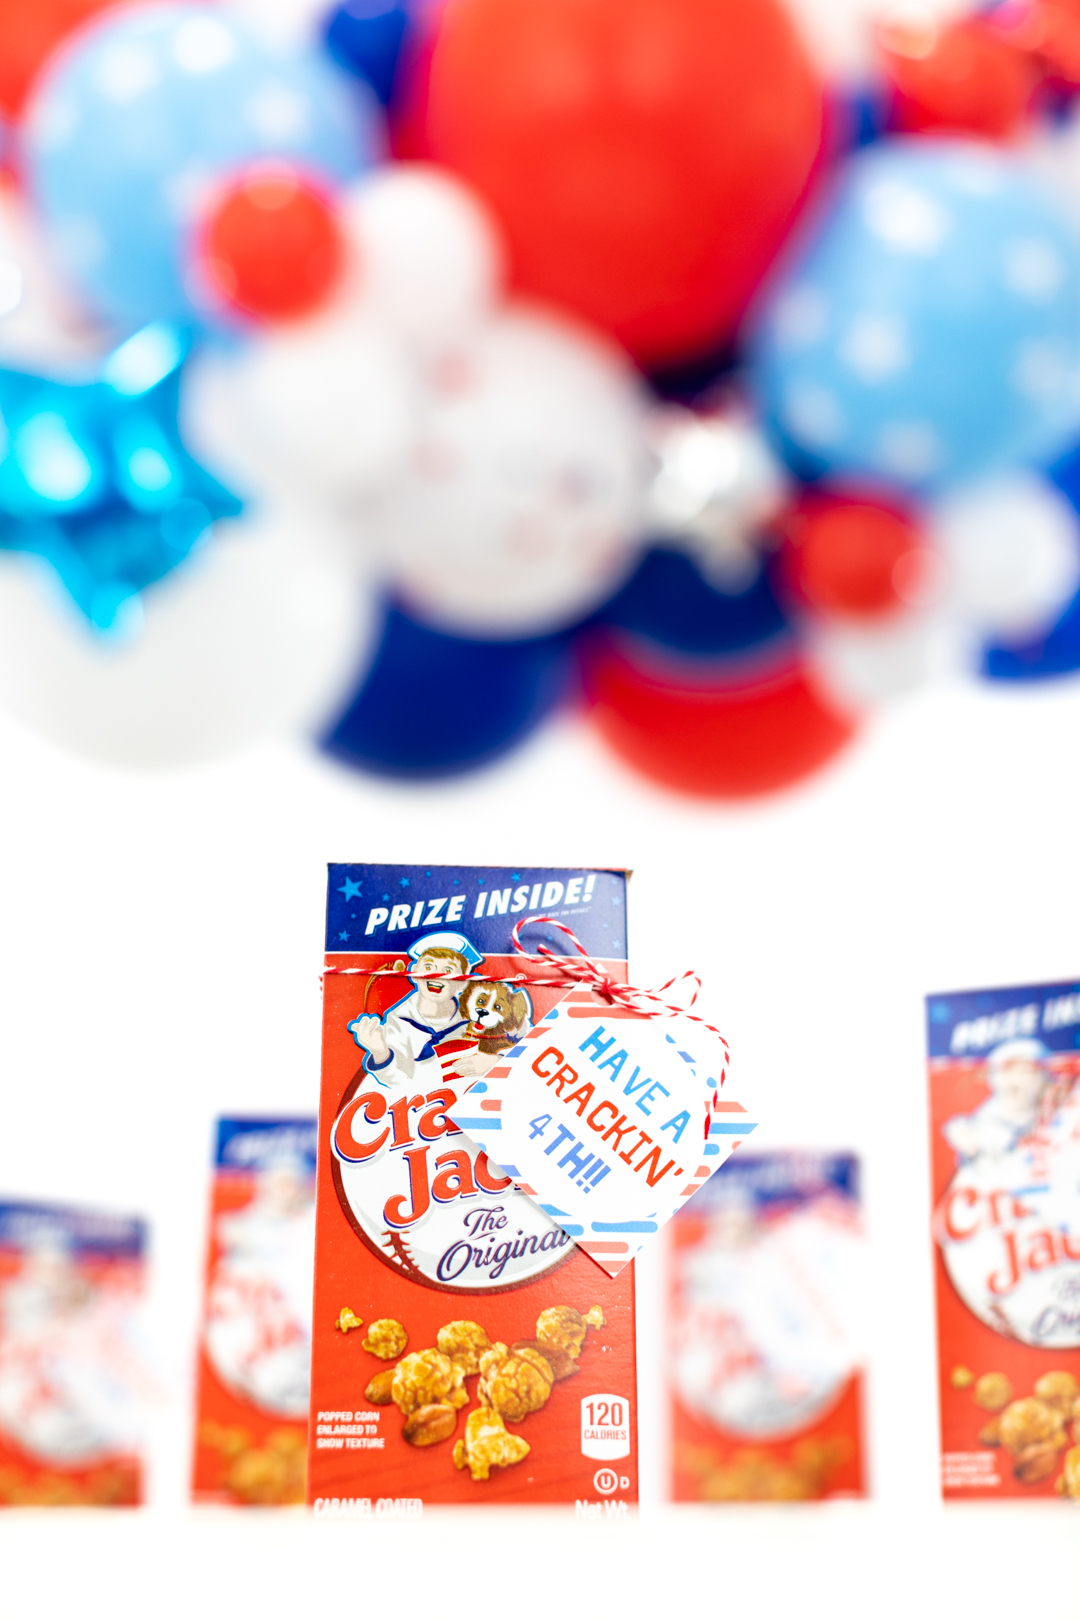 4th of july party with cracker jack boxes